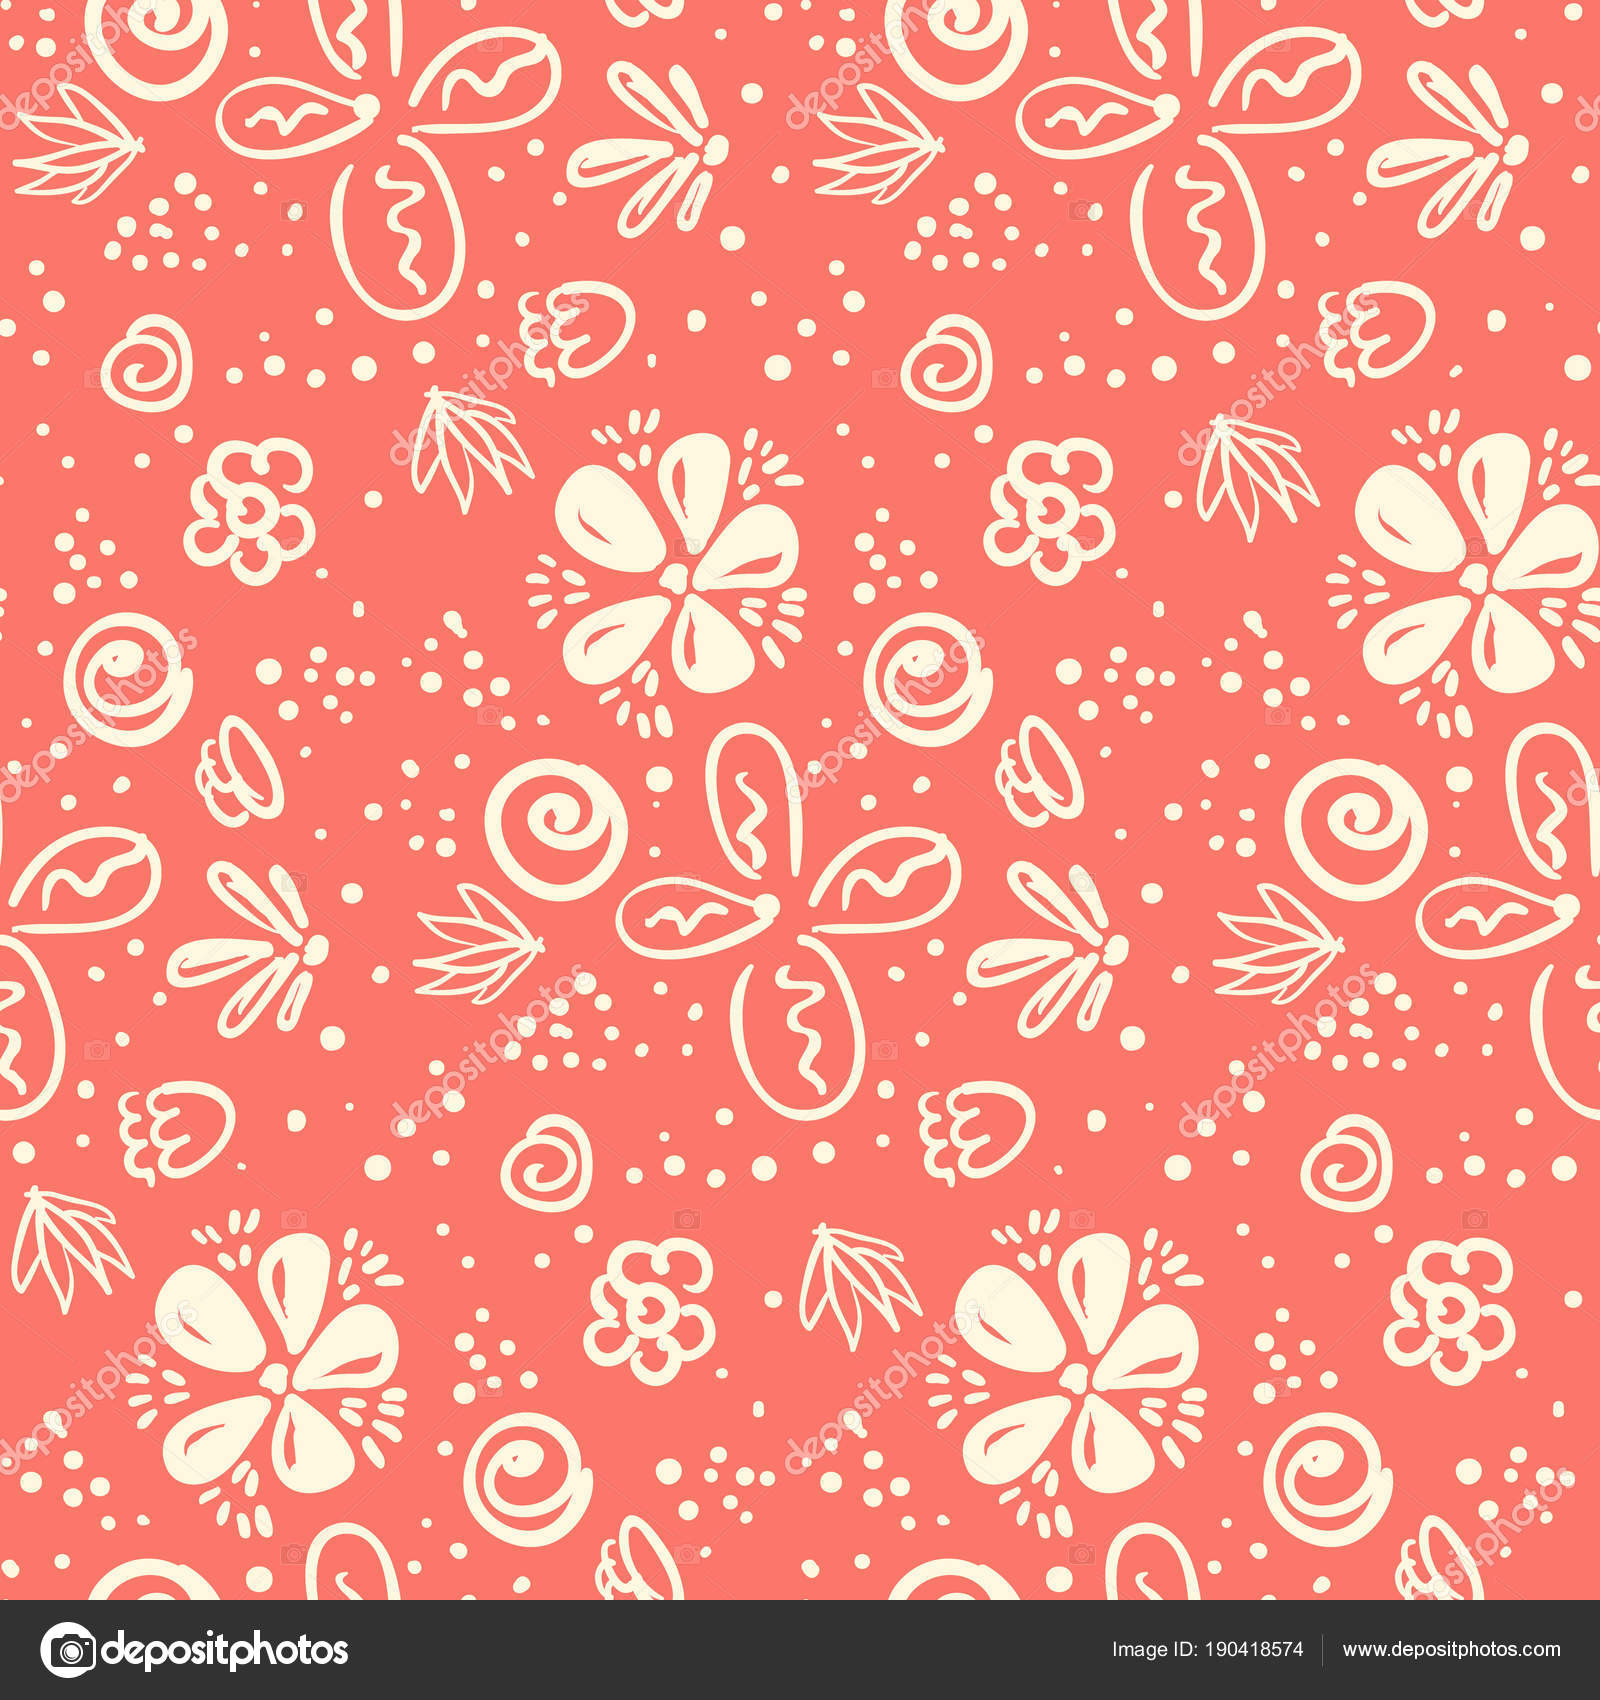 Tender Peach Color Doodle Floral Pattern Stock Vector